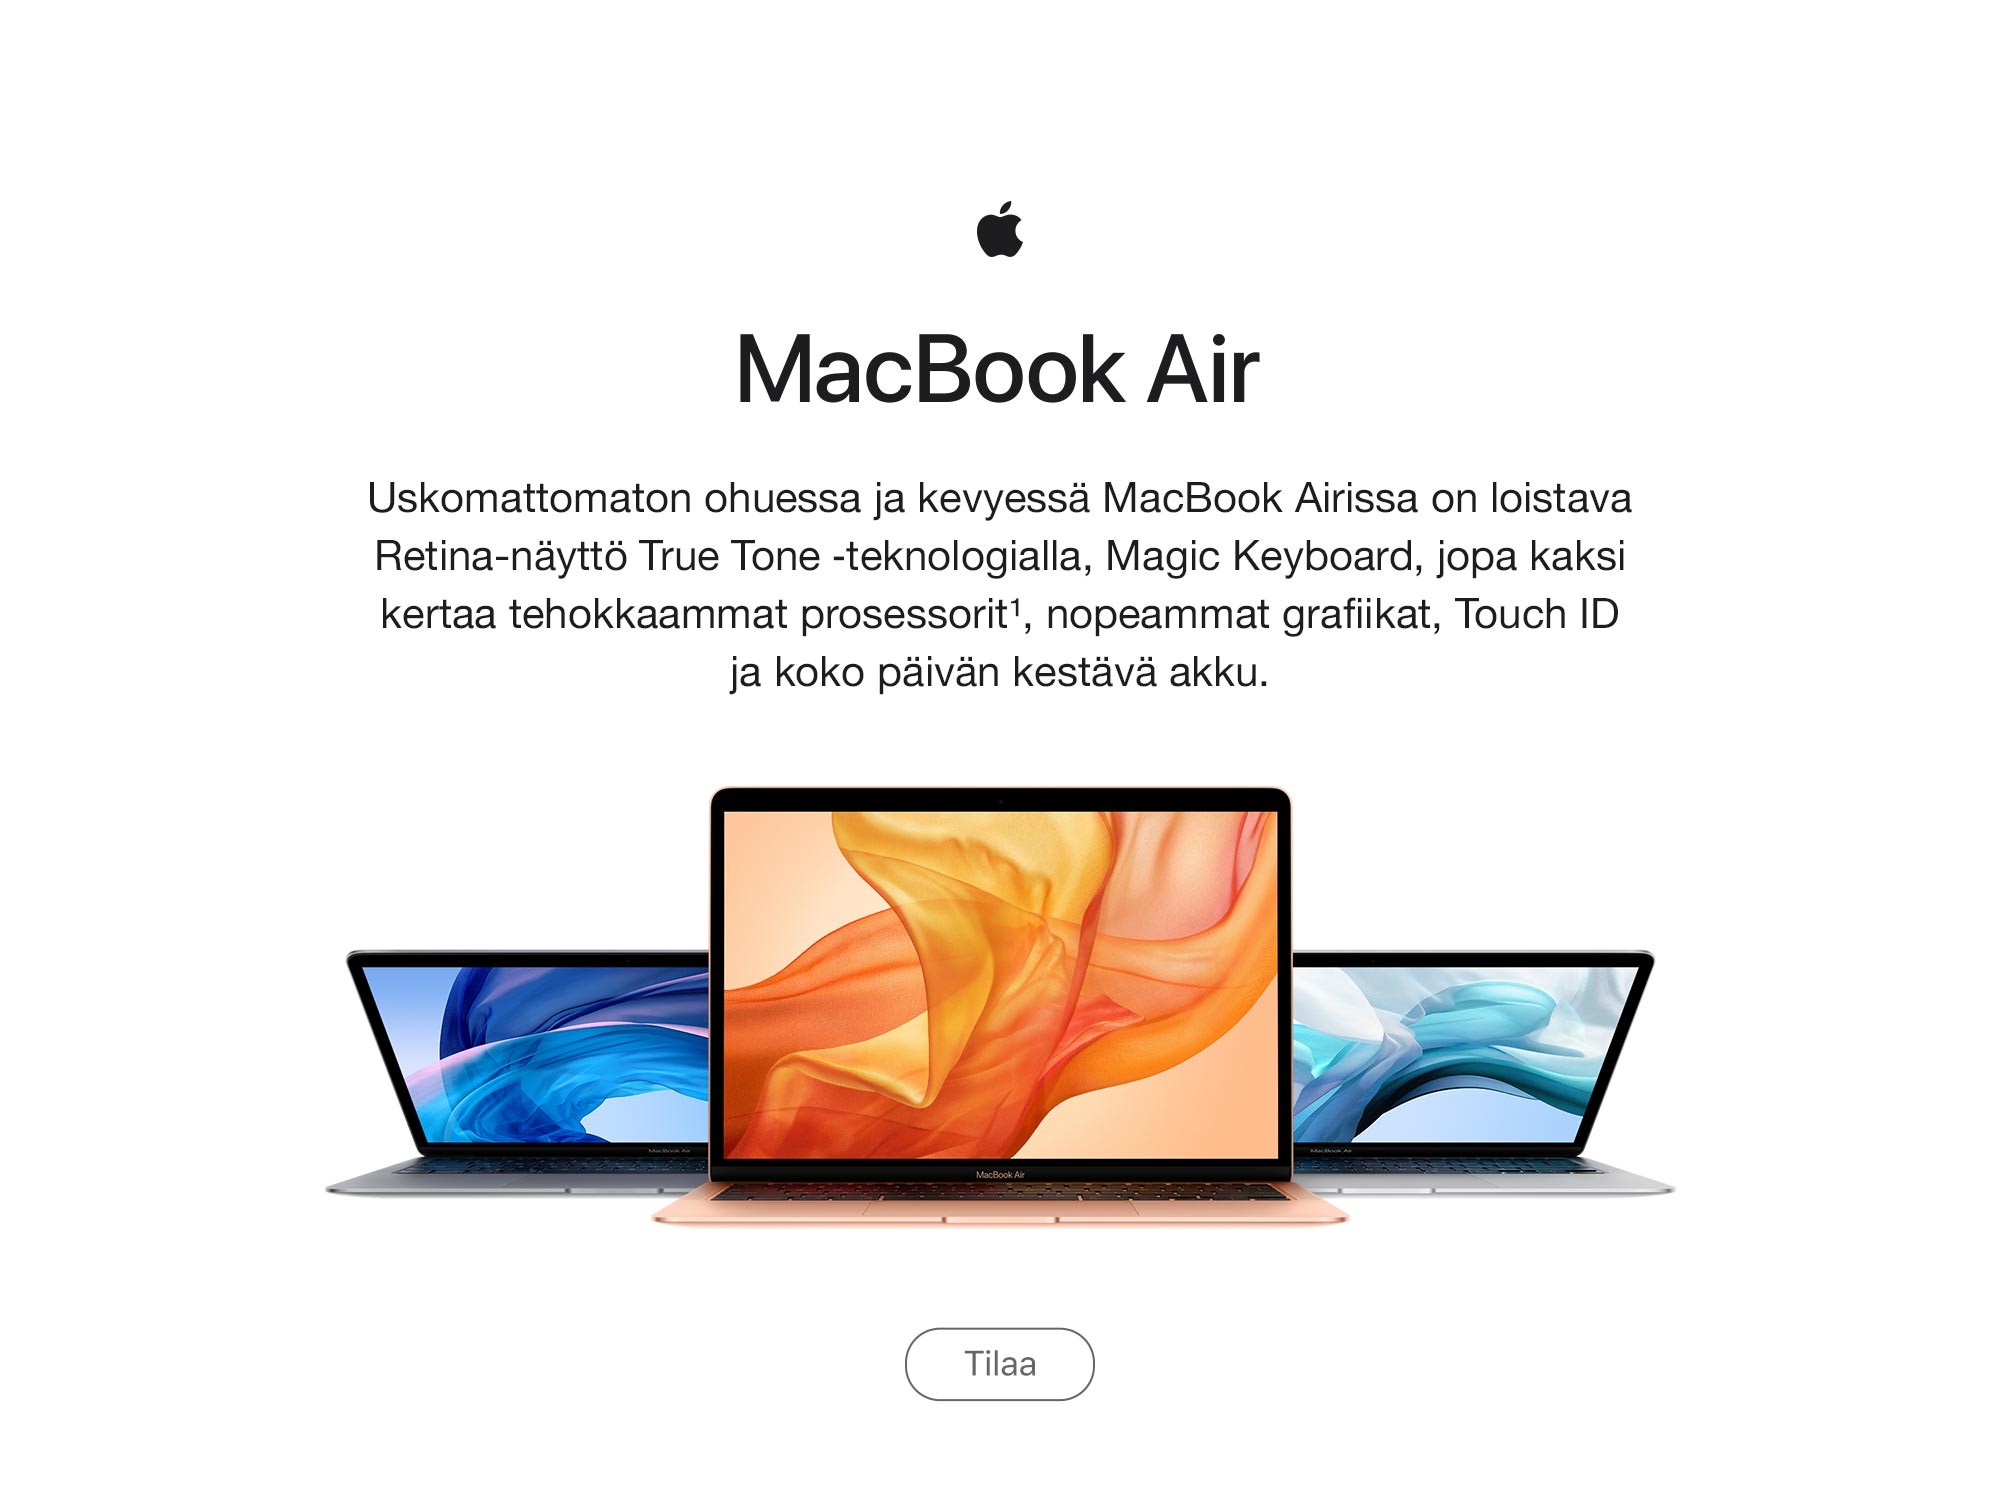 macbook_air_retina_2020